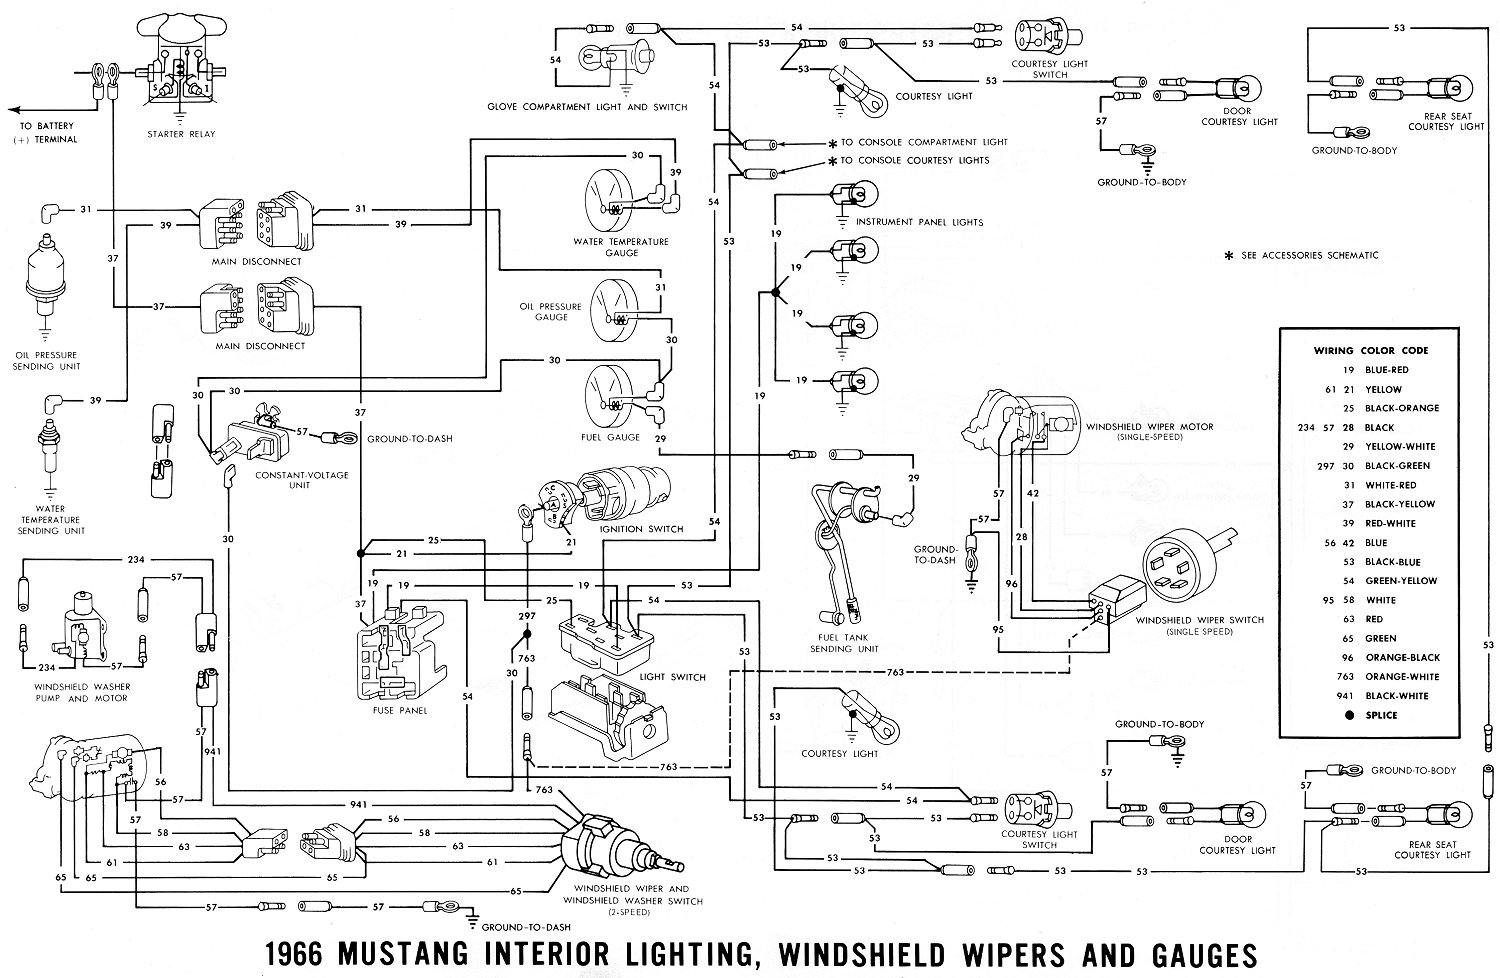 1966 Mustang Wiring Diagrams - Average Joe Restoration on 1969 ford mustang wiring diagram, 66 mustang wiring diagram, 1966 mustang horn wiring diagram, 1967 mustang radio wiring diagram, 1966 mustang wiring harness diagram, 1966 ford mustang wiring clip,